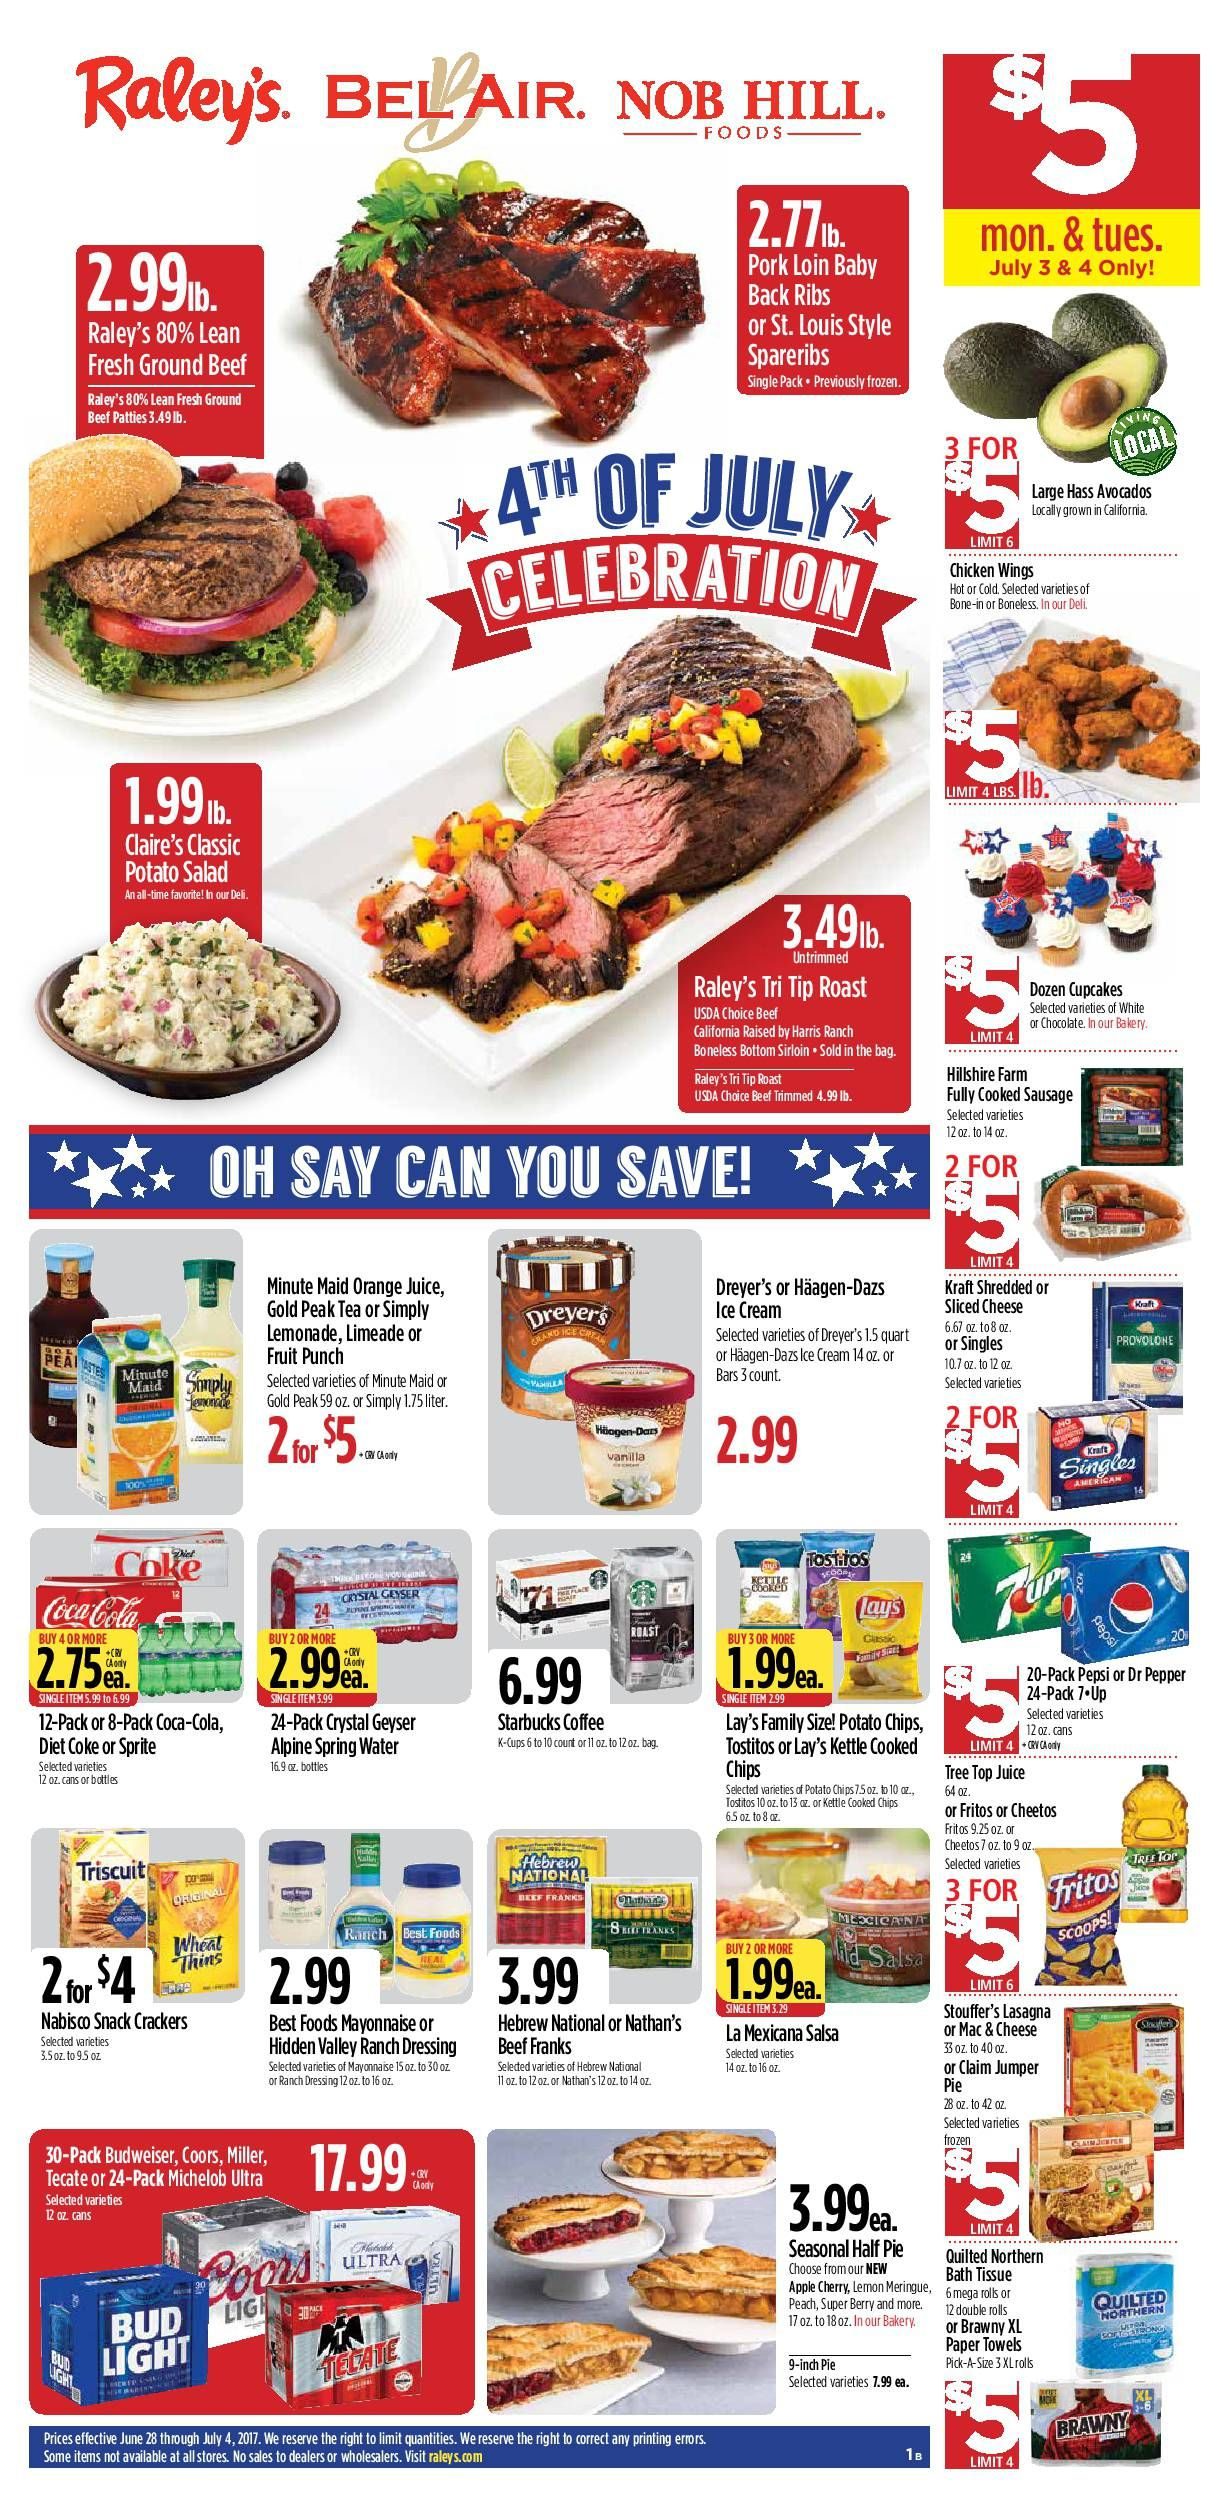 Raleys Weekly Ad June 28 July 4 2017 Do You Know What S In And What S Hot In The Raley S For This Week If You